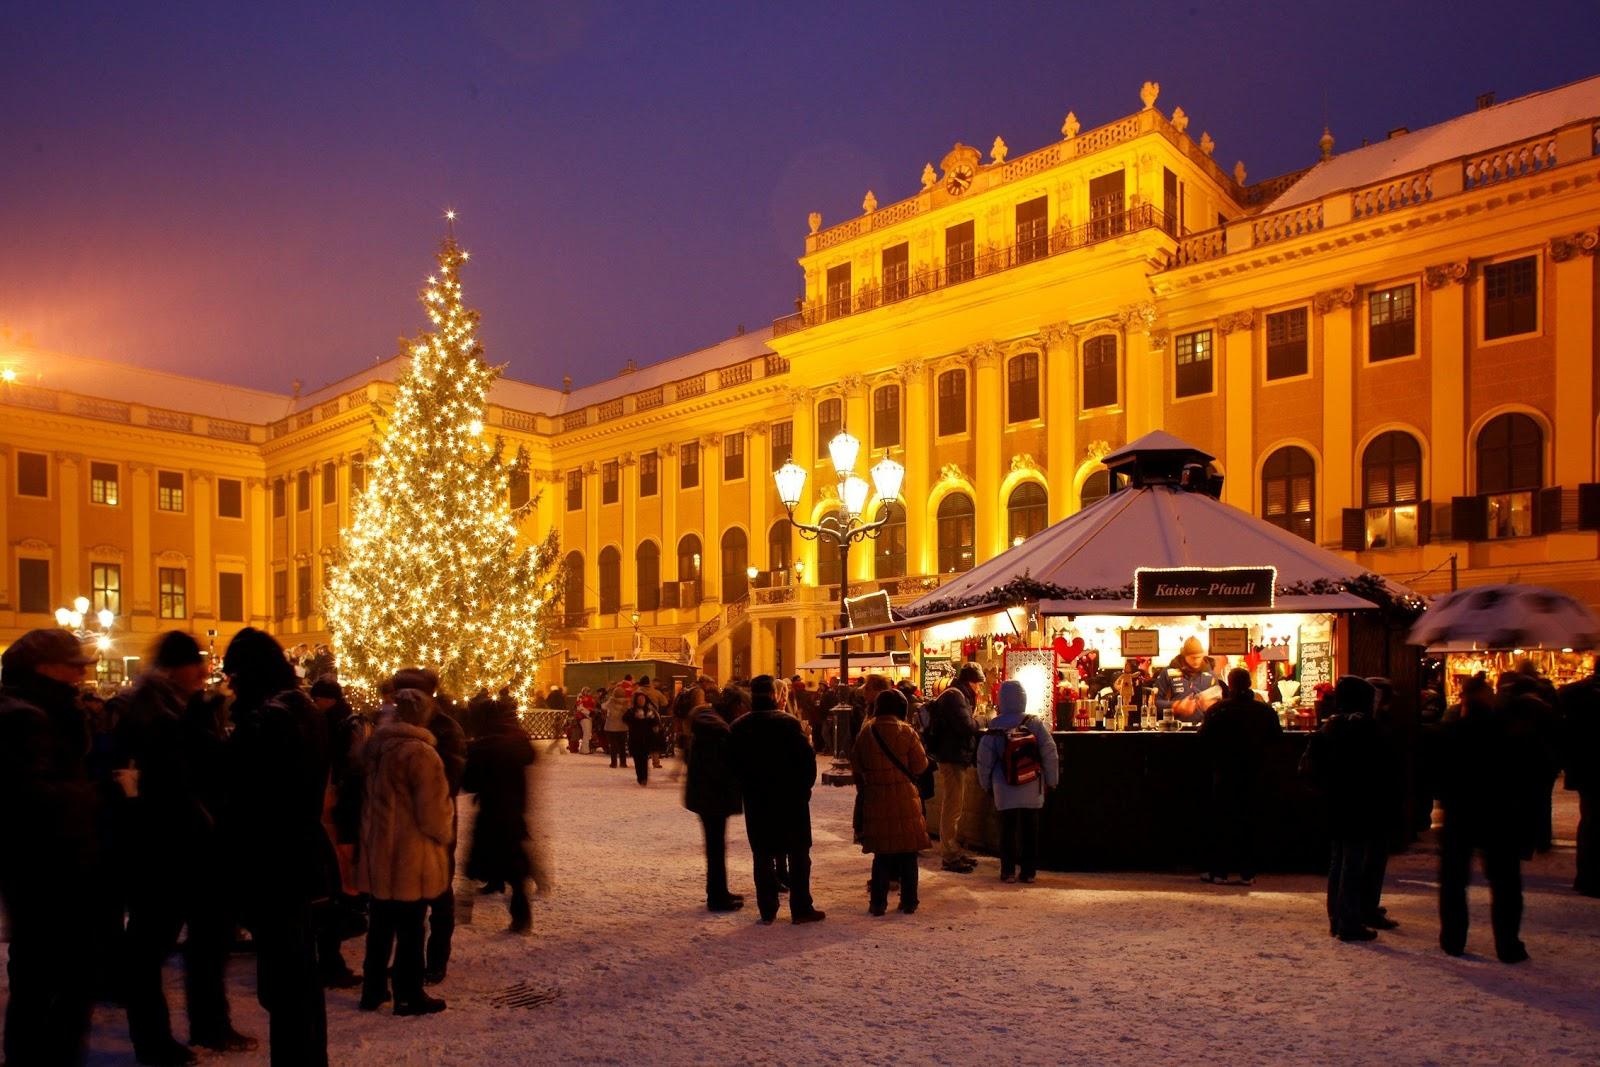 Austria's exquisite Schönbrunn Palace aglow under the Christmas market light. Photo: Courtesy of Austria Tourism. Unauthorized use is prohibited.